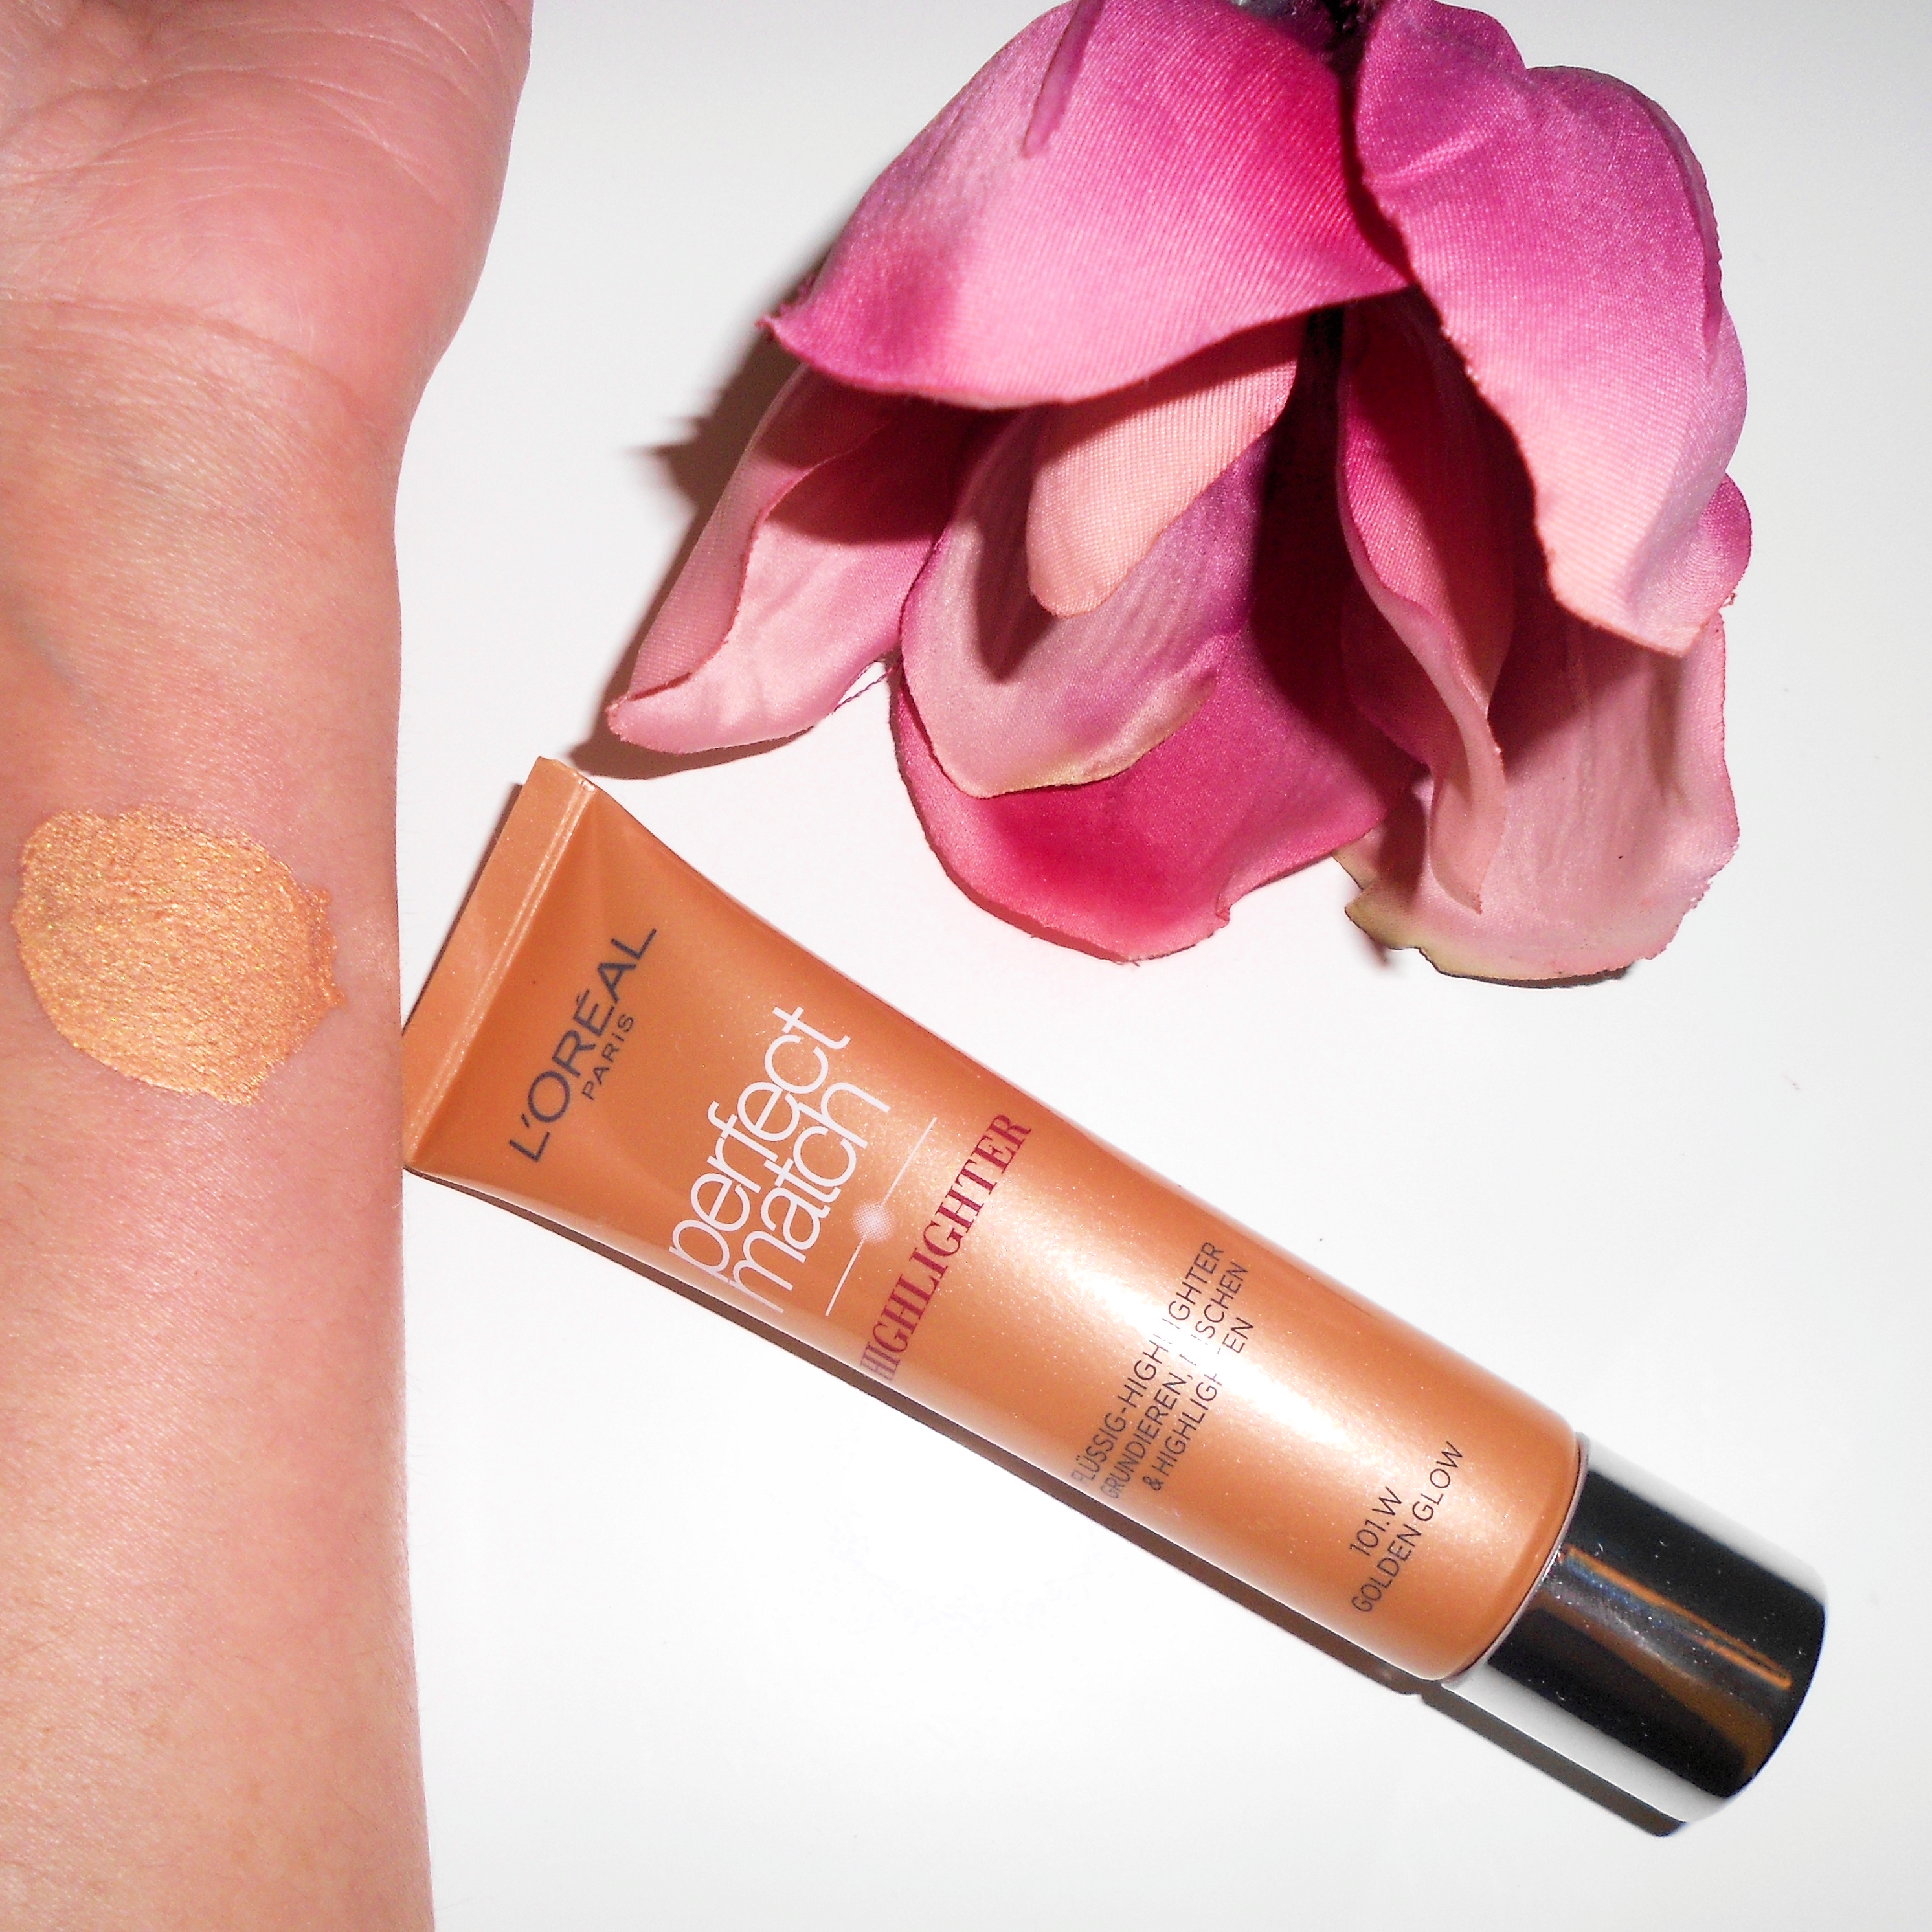 loreal-perfect-match-highlighter-101-golden-glow-swatch